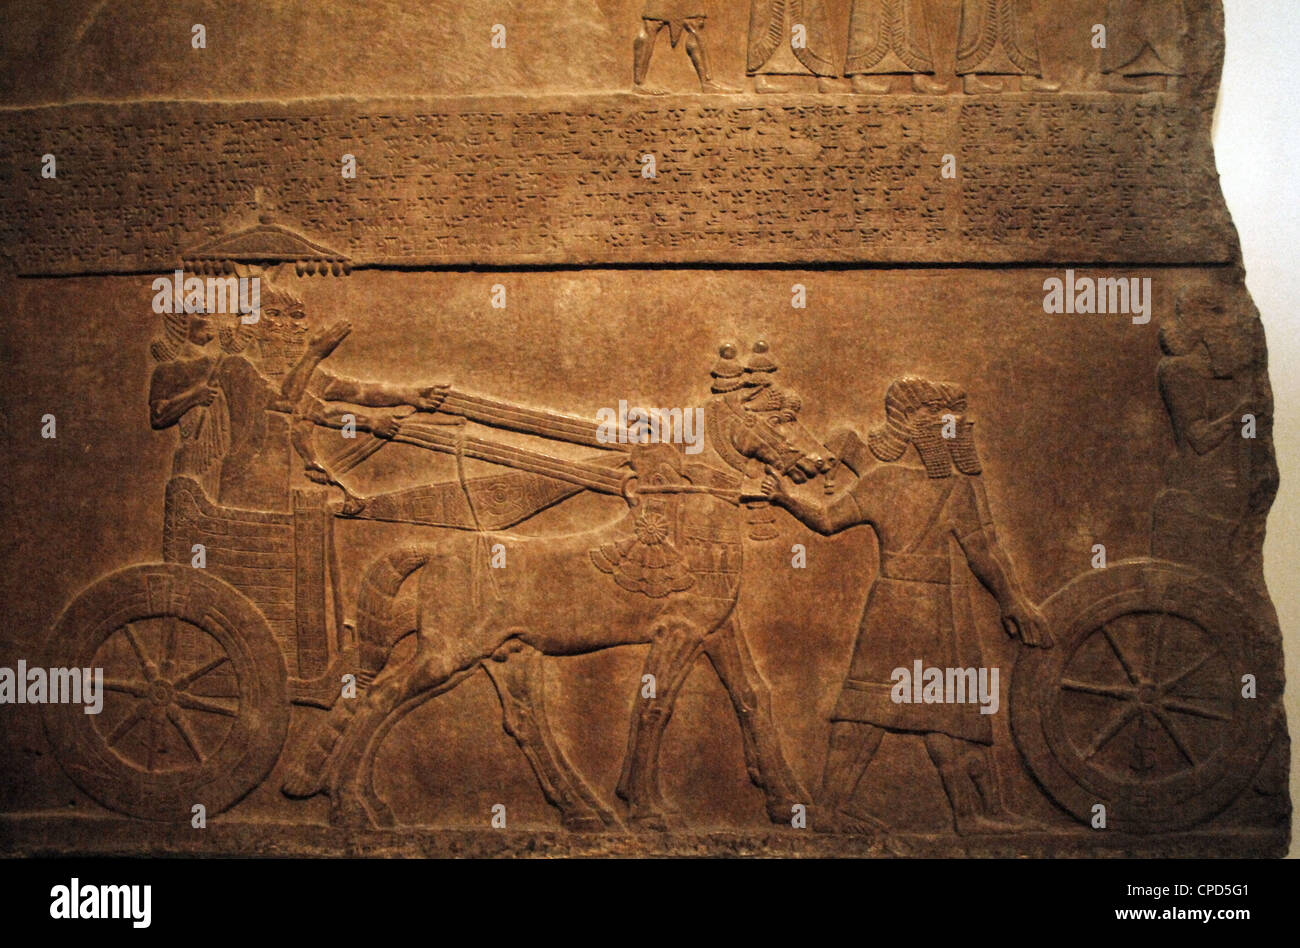 Alabaster panel depicting King Tiglath-Pileser III in his chariot. From the Palace of Nimrud. Stock Photo